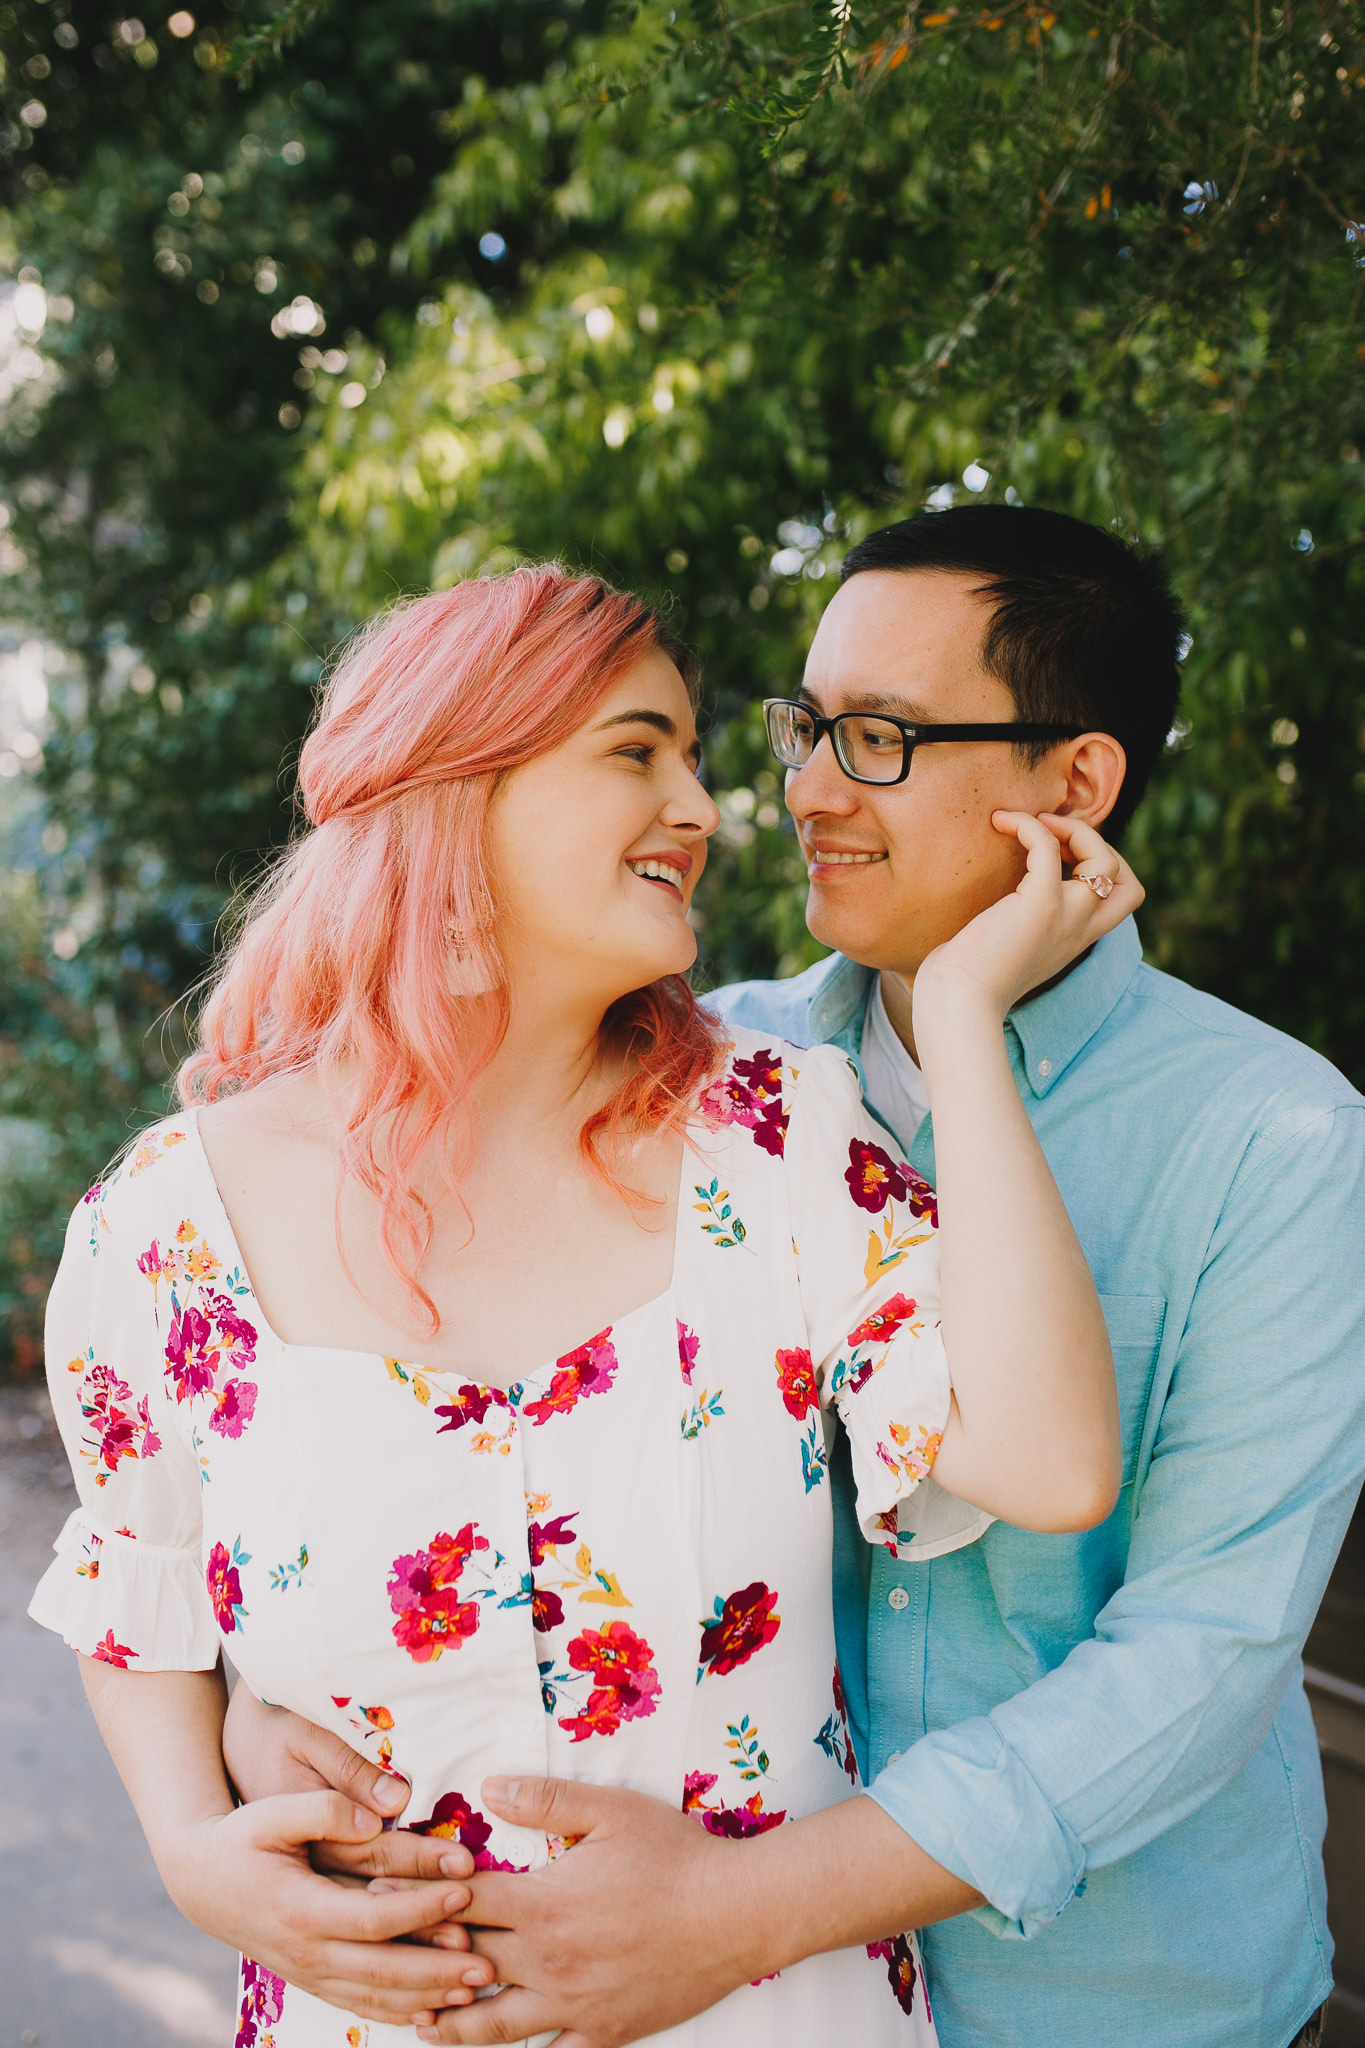 Archer Inspired Photography Disneyland Engagement Wedding Session Southern California Kayla and Kevin Lifestyle Documentary-31.jpg